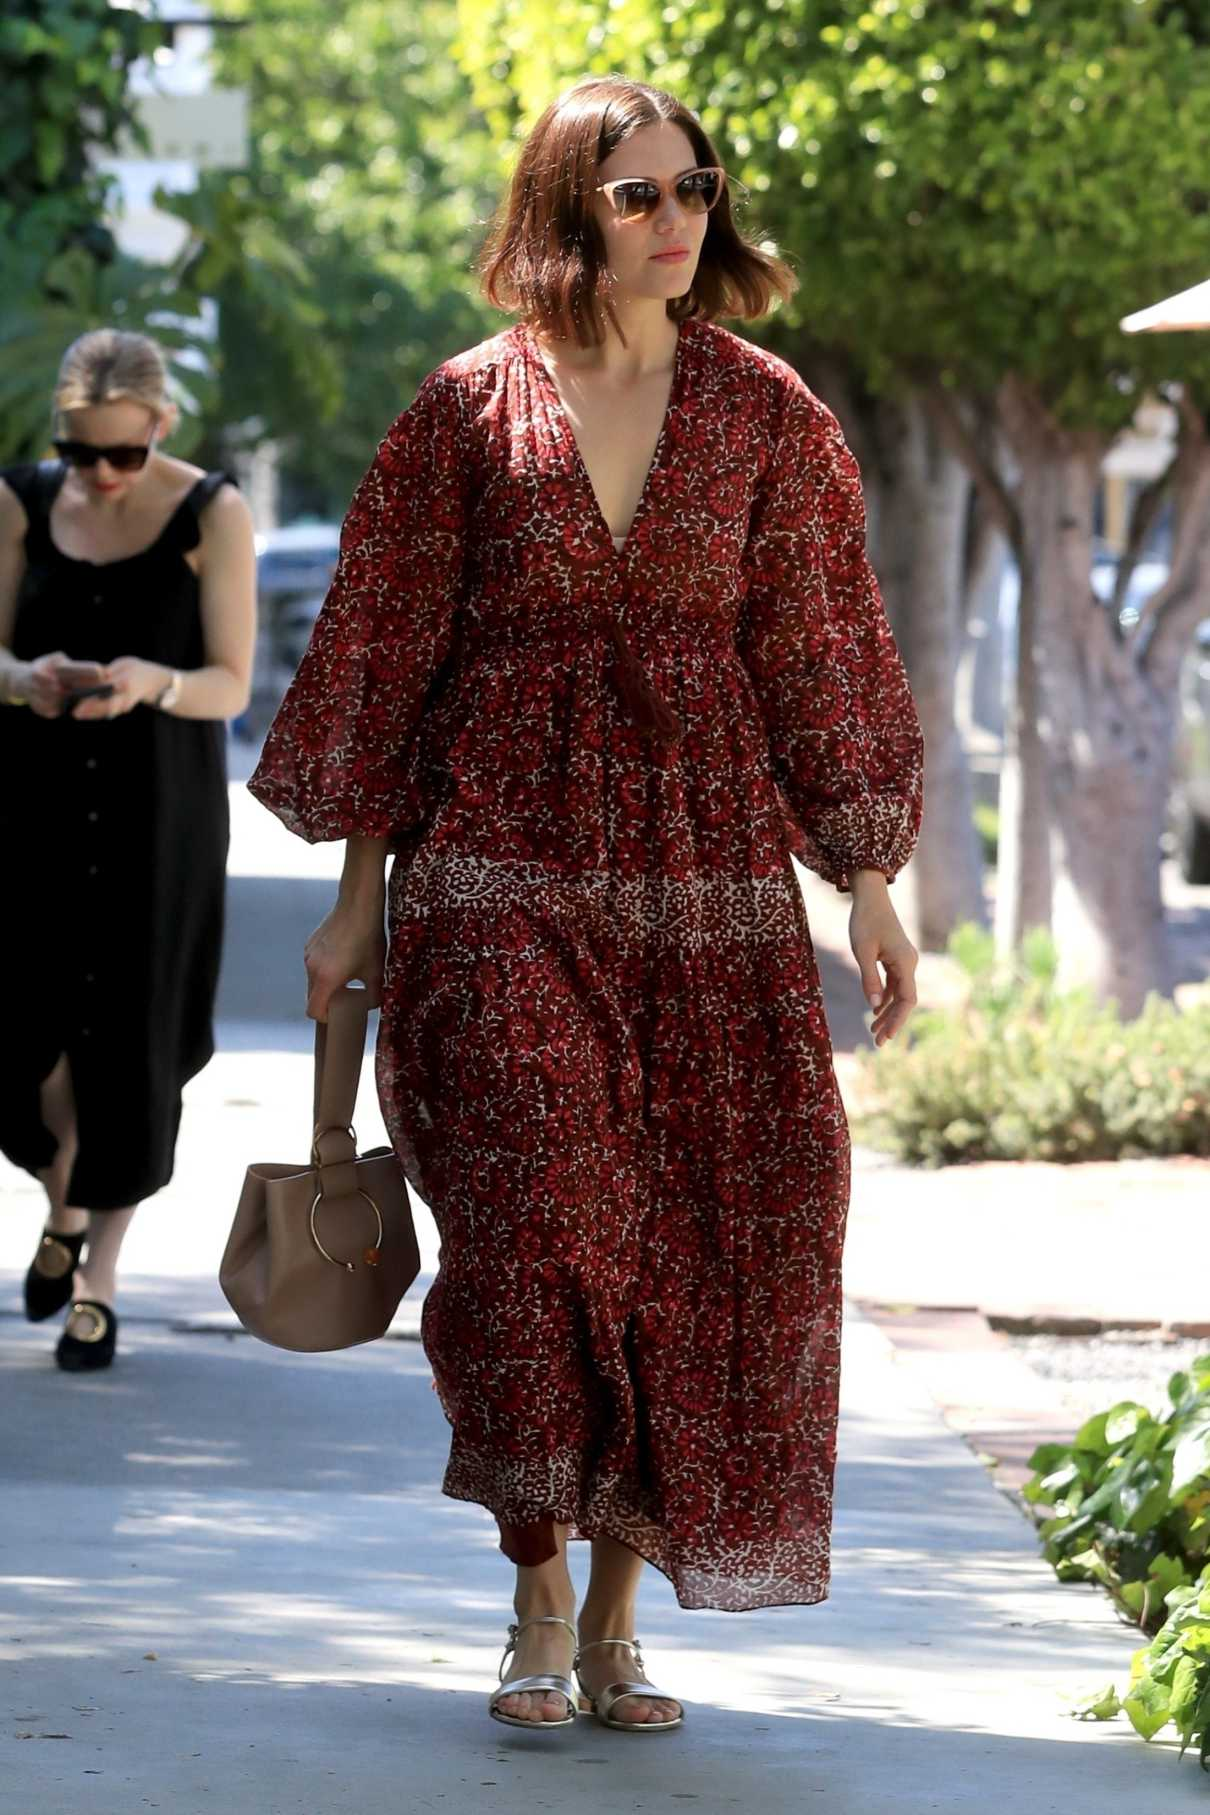 Mandy Moore in a Red Floral Dress Was Seen Out in West Hollywood 04/01/2019